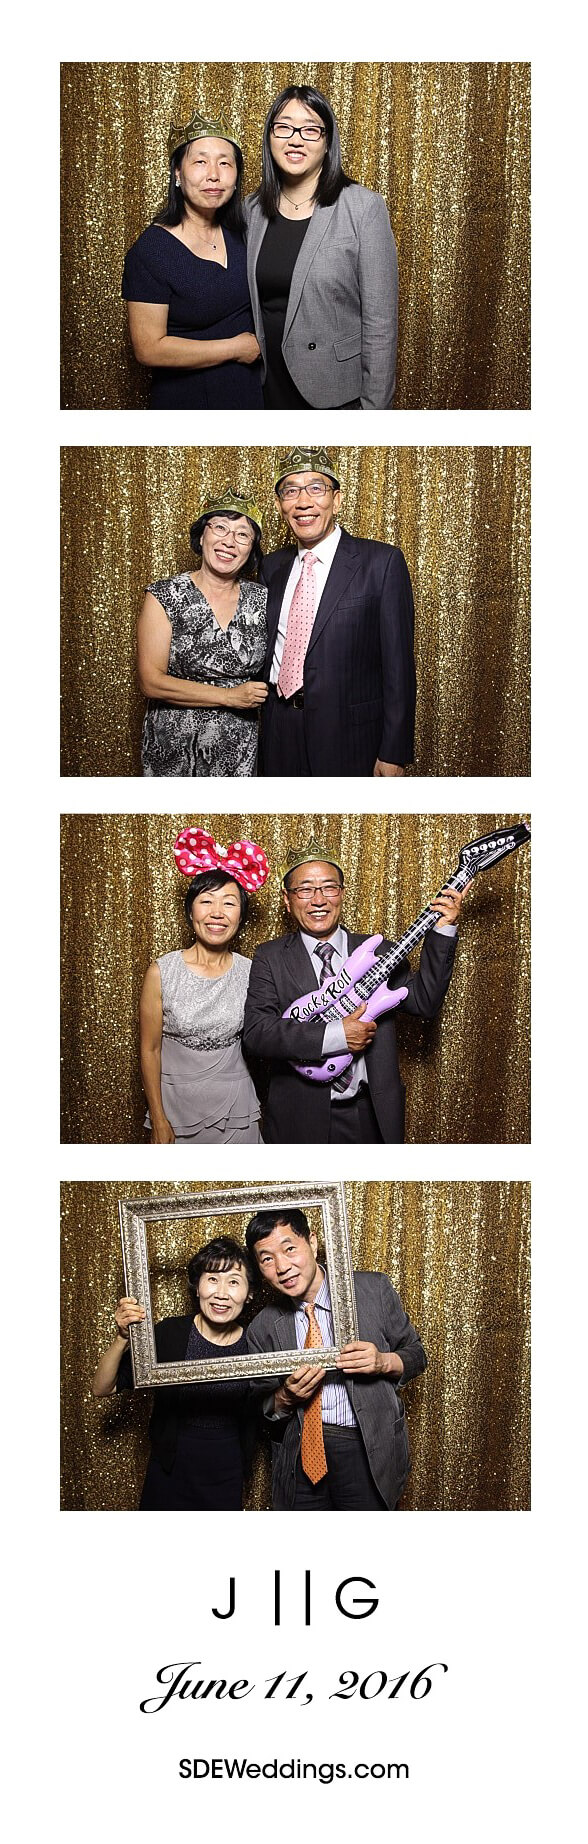 Toronto Four Seasons Hotel Wedding Photo Booth Rental 5